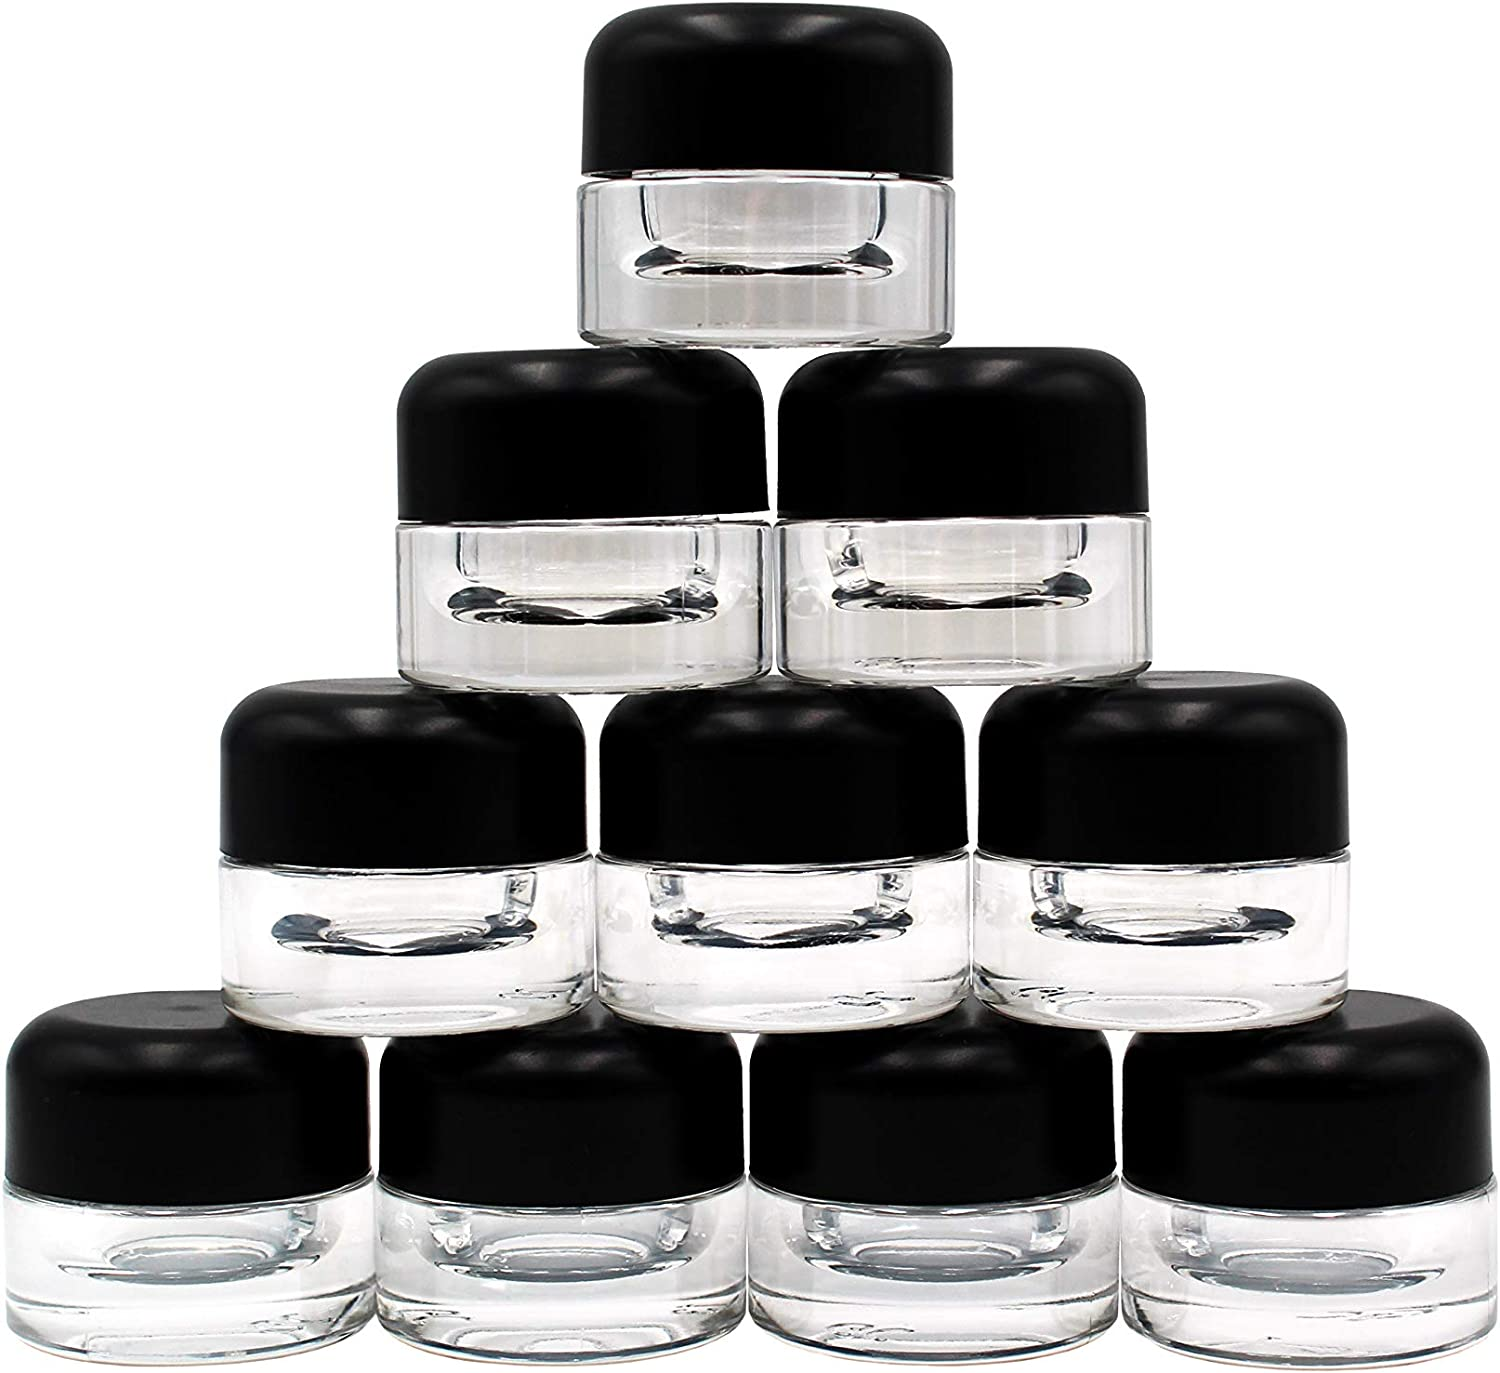 1 Gram Glass Concentrate Jars with Lids, 360 Jars/Lids, GriploK Child Resistant 9 ml Glass Storage Jars, Certified Food Safe Containers for Travel, Cosmetic, Makeup, Herbs, Spices, Oils, Creams, More…